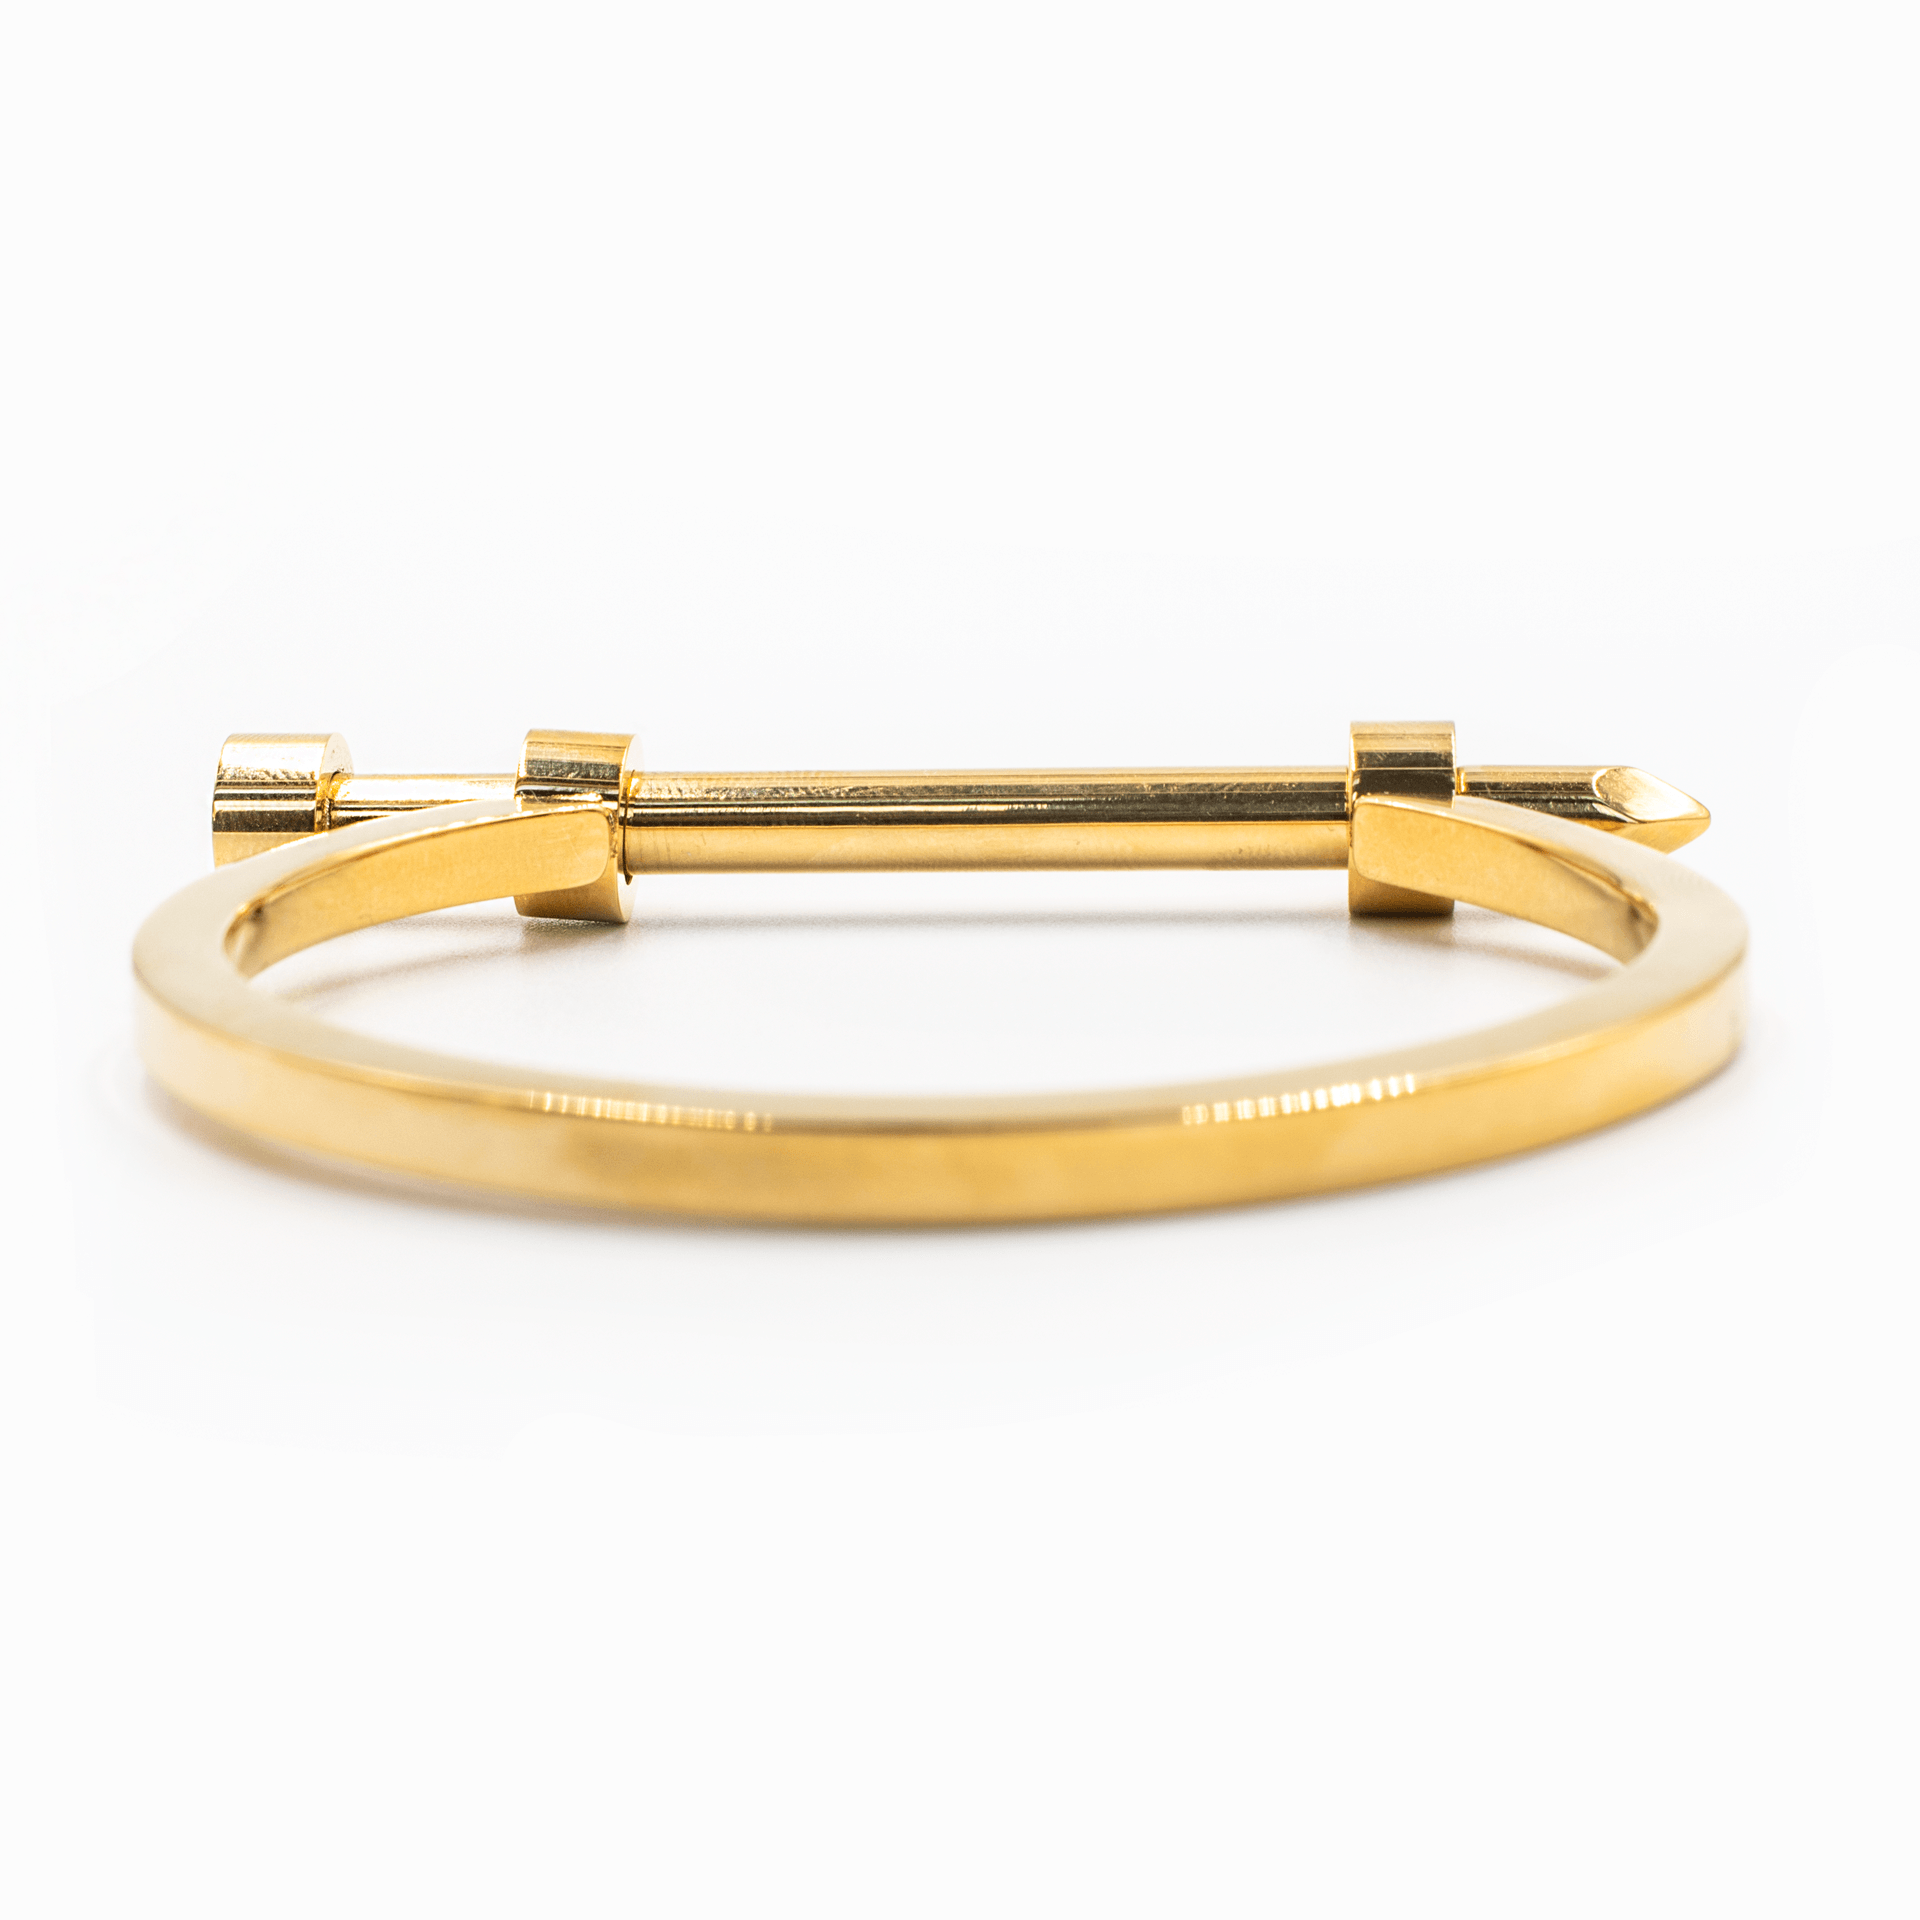 Gold Screw Bracelet Stainless Steel Back View